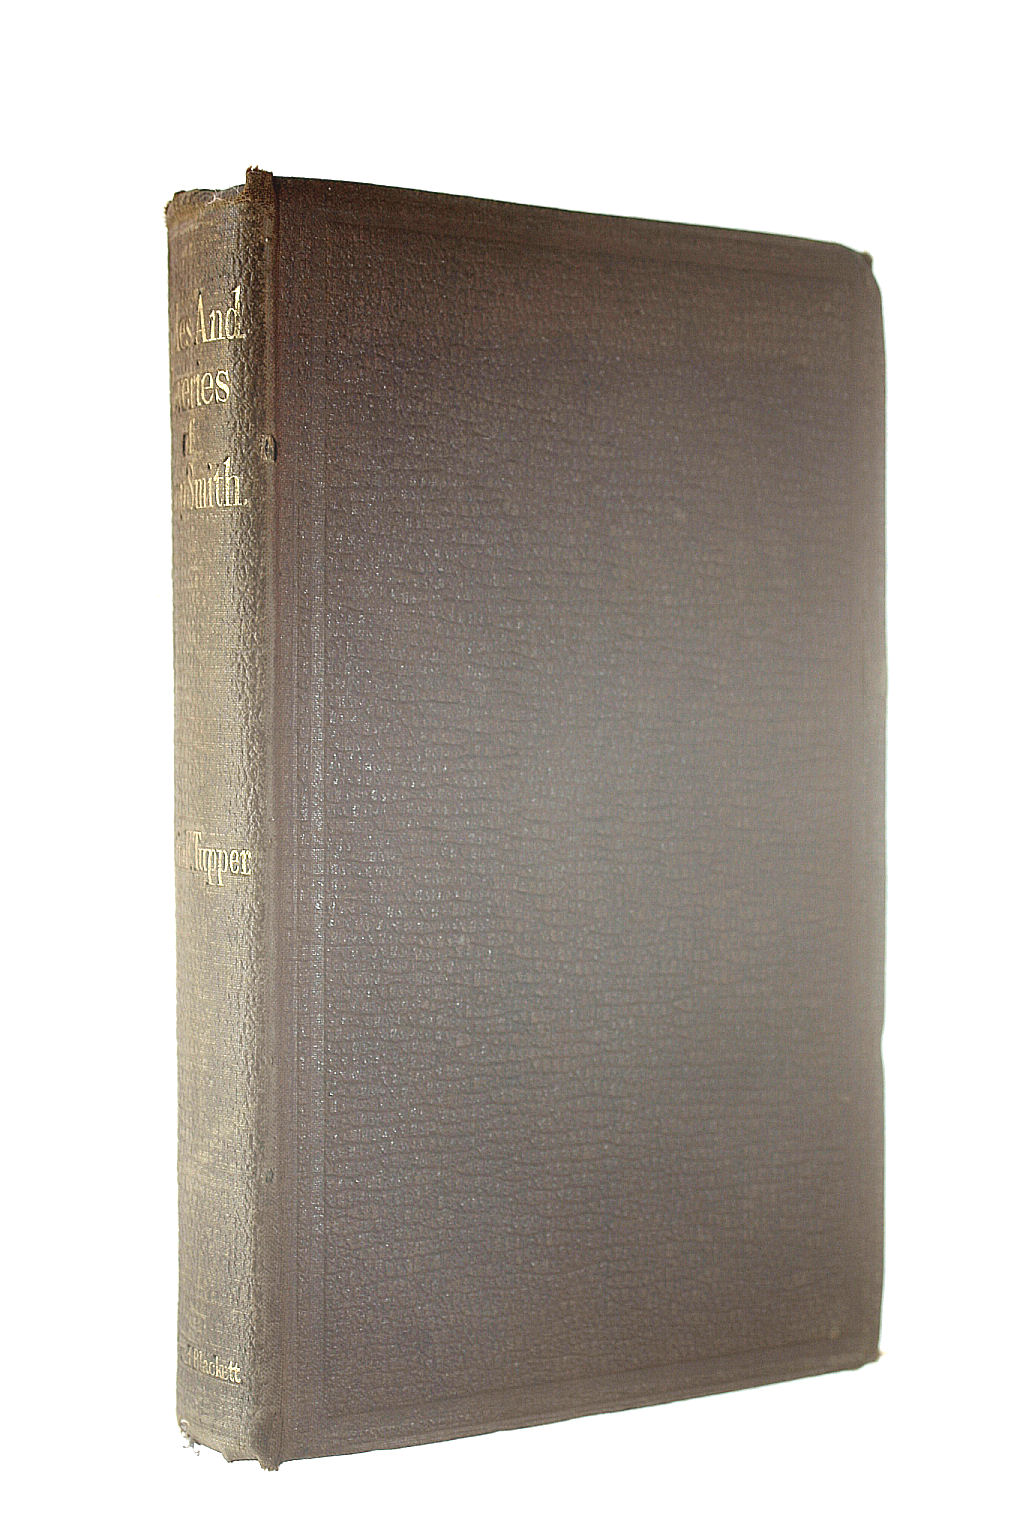 Image for Rides and Reveries of the Late Mr. Aesop Smith. Edited By Peter Query, Fsa (Martin F. Tupper)